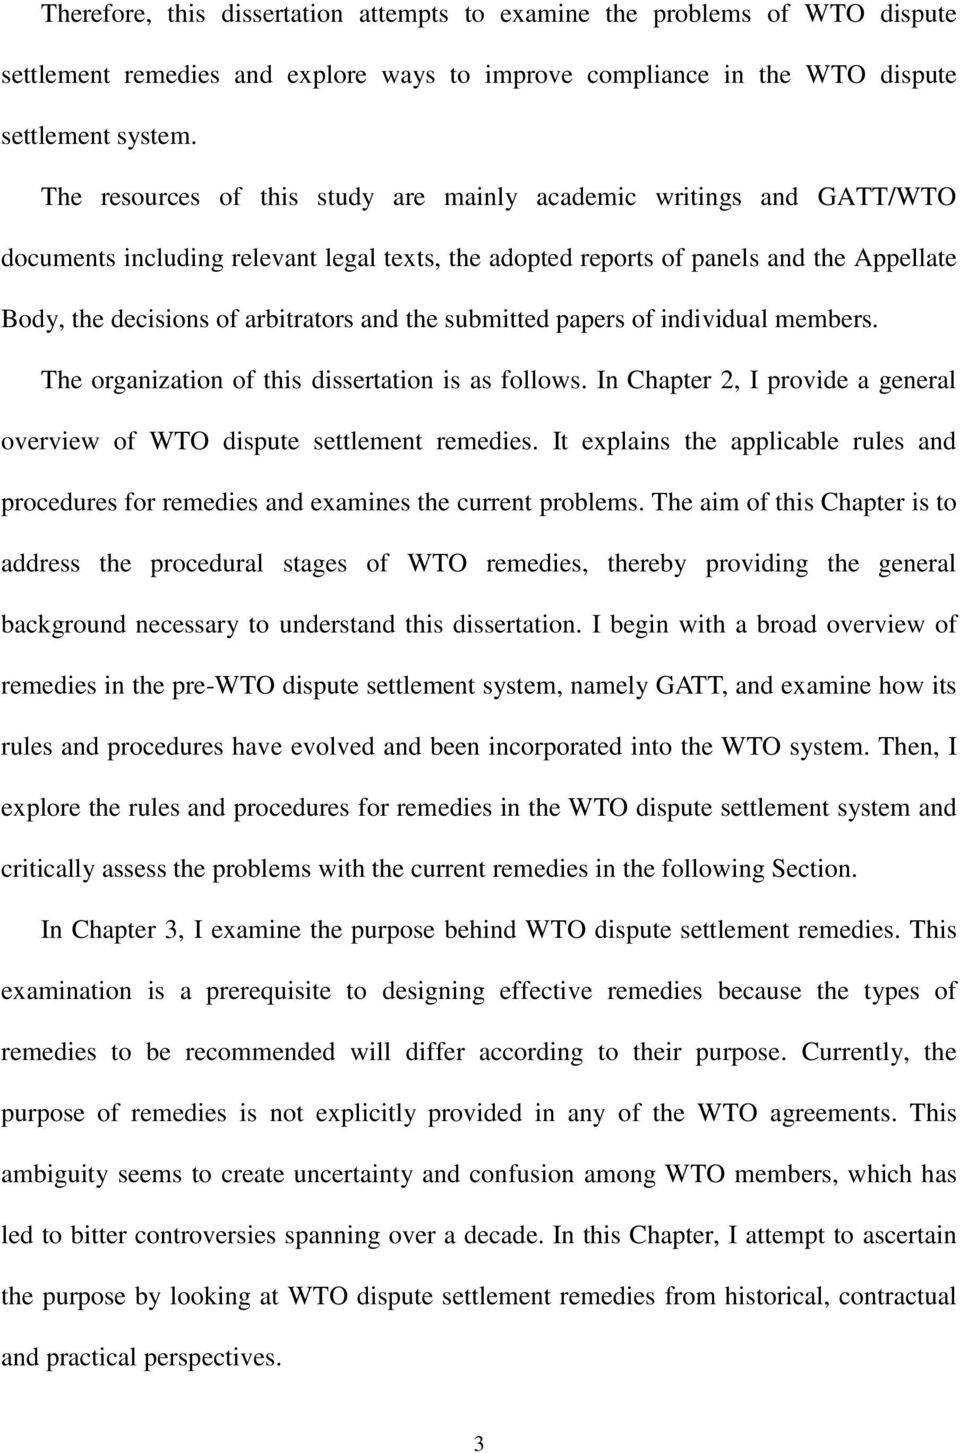 the submitted papers of individual members. The organization of this dissertation is as follows. In Chapter 2, I provide a general overview of WTO dispute settlement remedies.